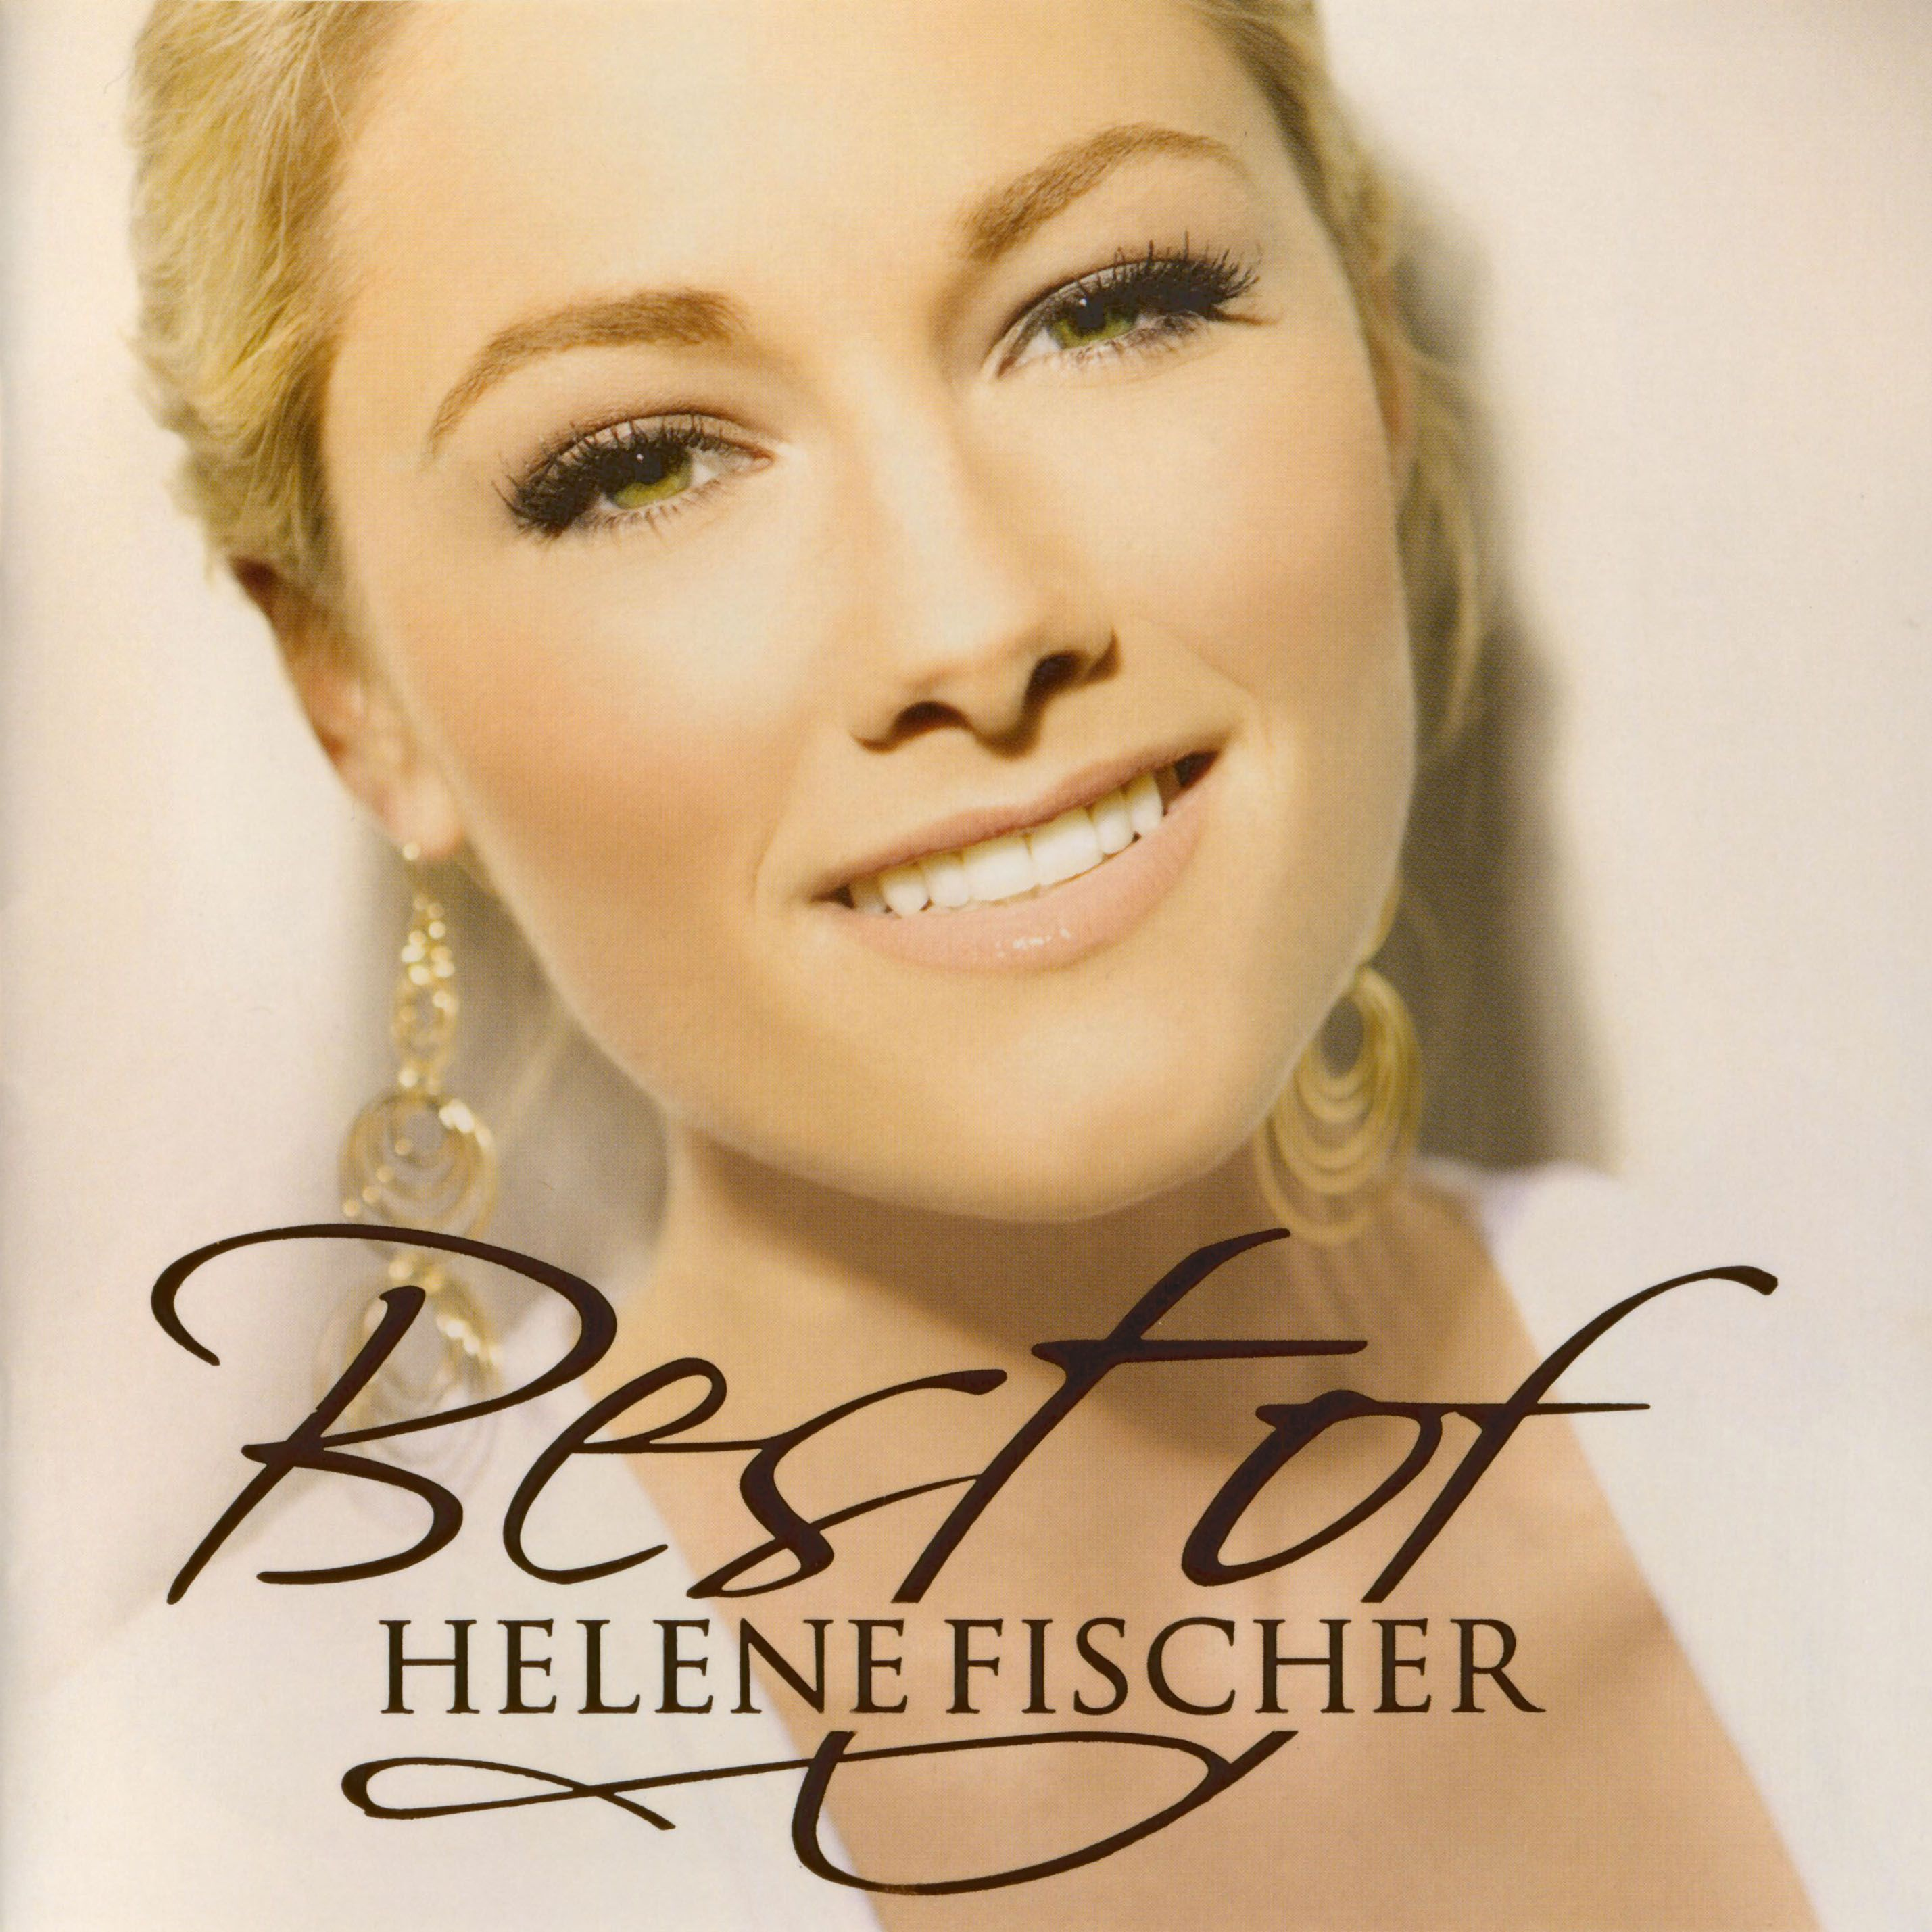 Helene Fischer - Best Of Helene Fischer album cover